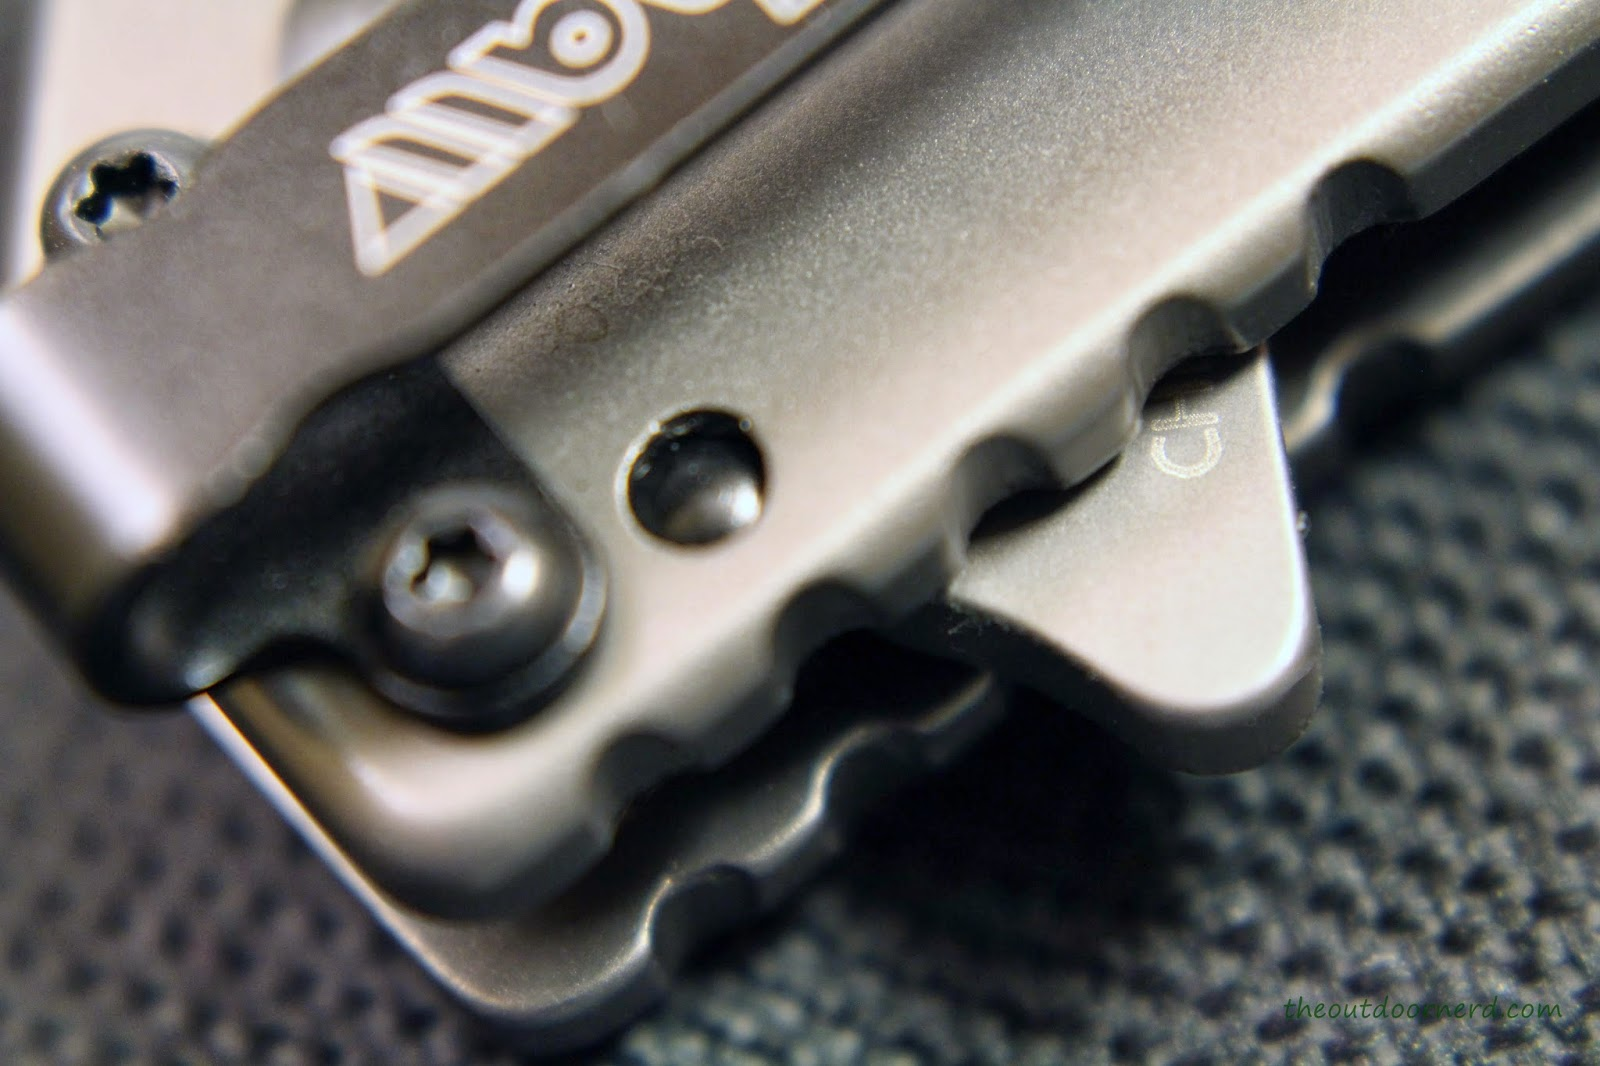 Kershaw Cryo EDC Pocket Knife: View Of Clip 2